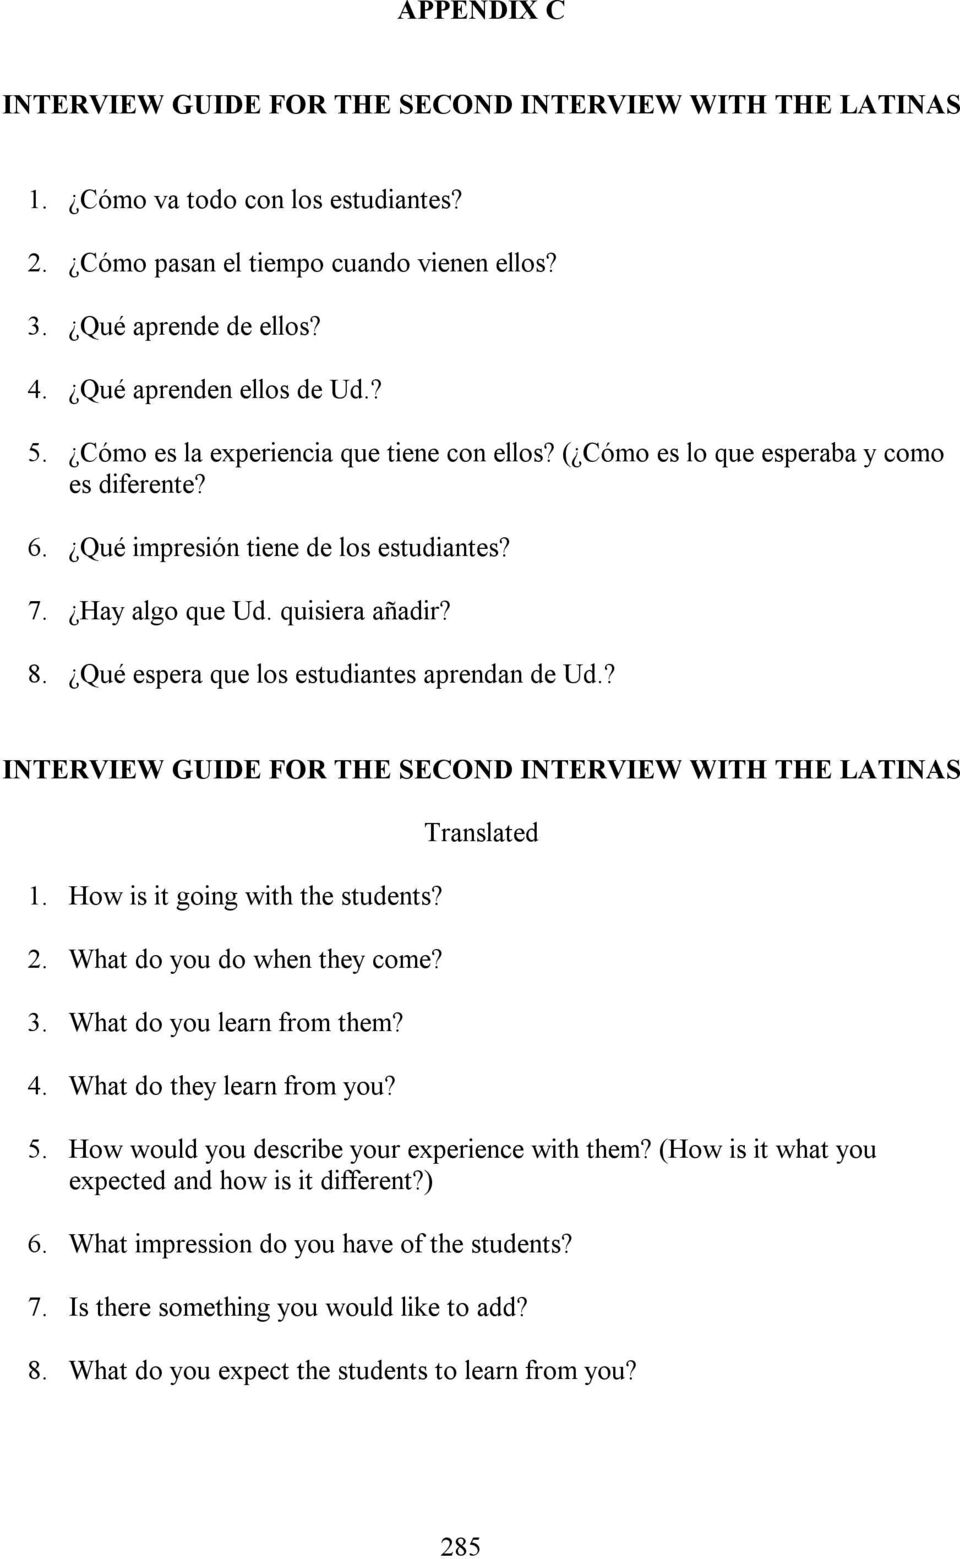 8. Qué espera que los estudiantes aprendan de Ud.? INTERVIEW GUIDE FOR THE SECOND INTERVIEW WITH THE LATINAS 1. How is it going with the students? 2. What do you do when they come? 3.